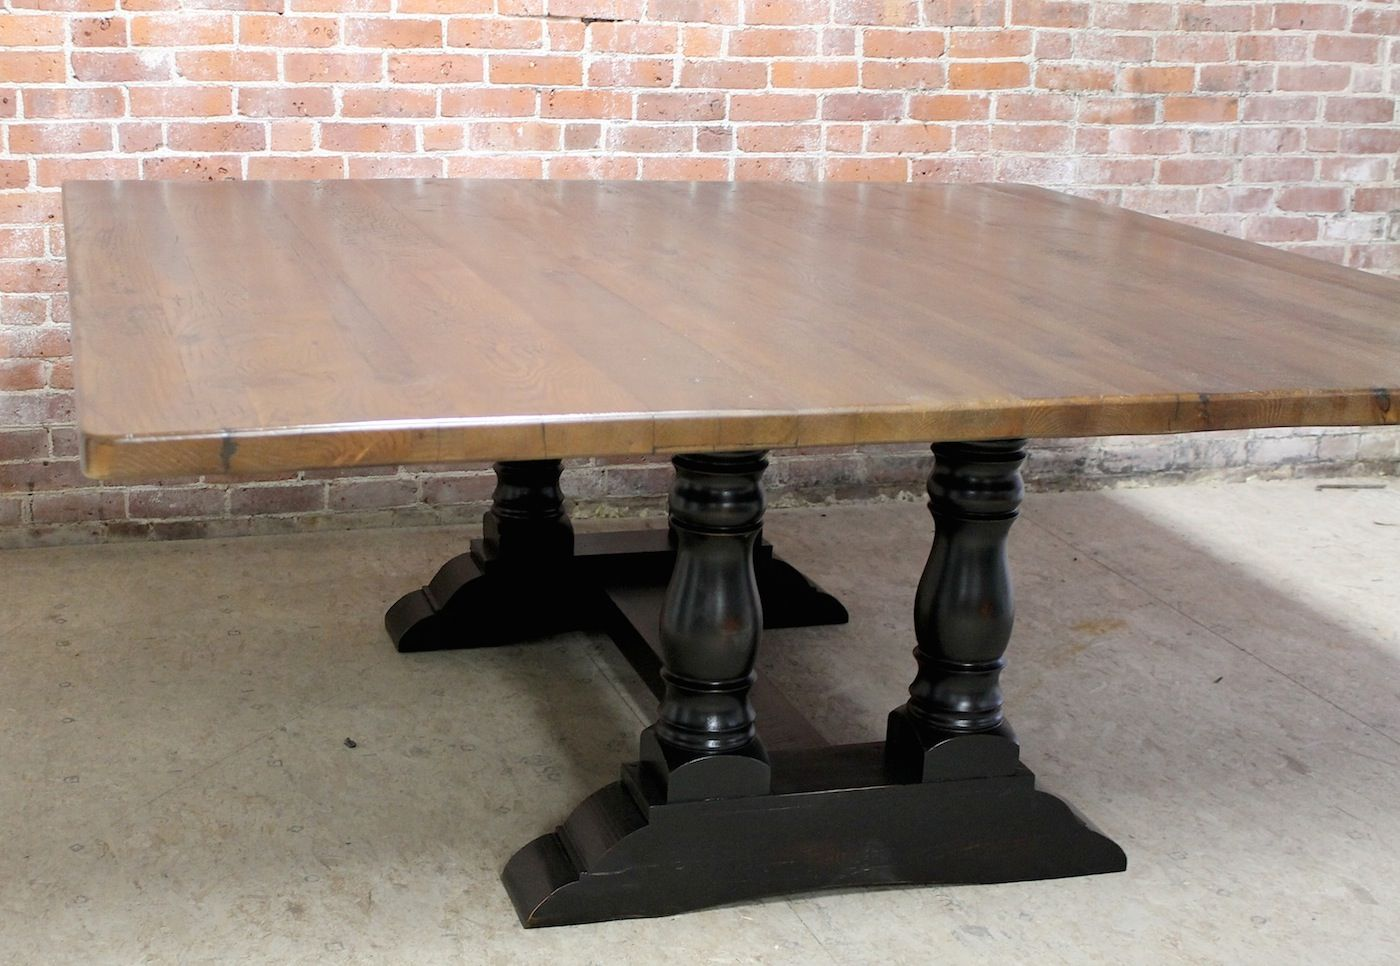 Swell 78 Inch Square Table Made From Reclaimed Old Oak Hand Squirreltailoven Fun Painted Chair Ideas Images Squirreltailovenorg